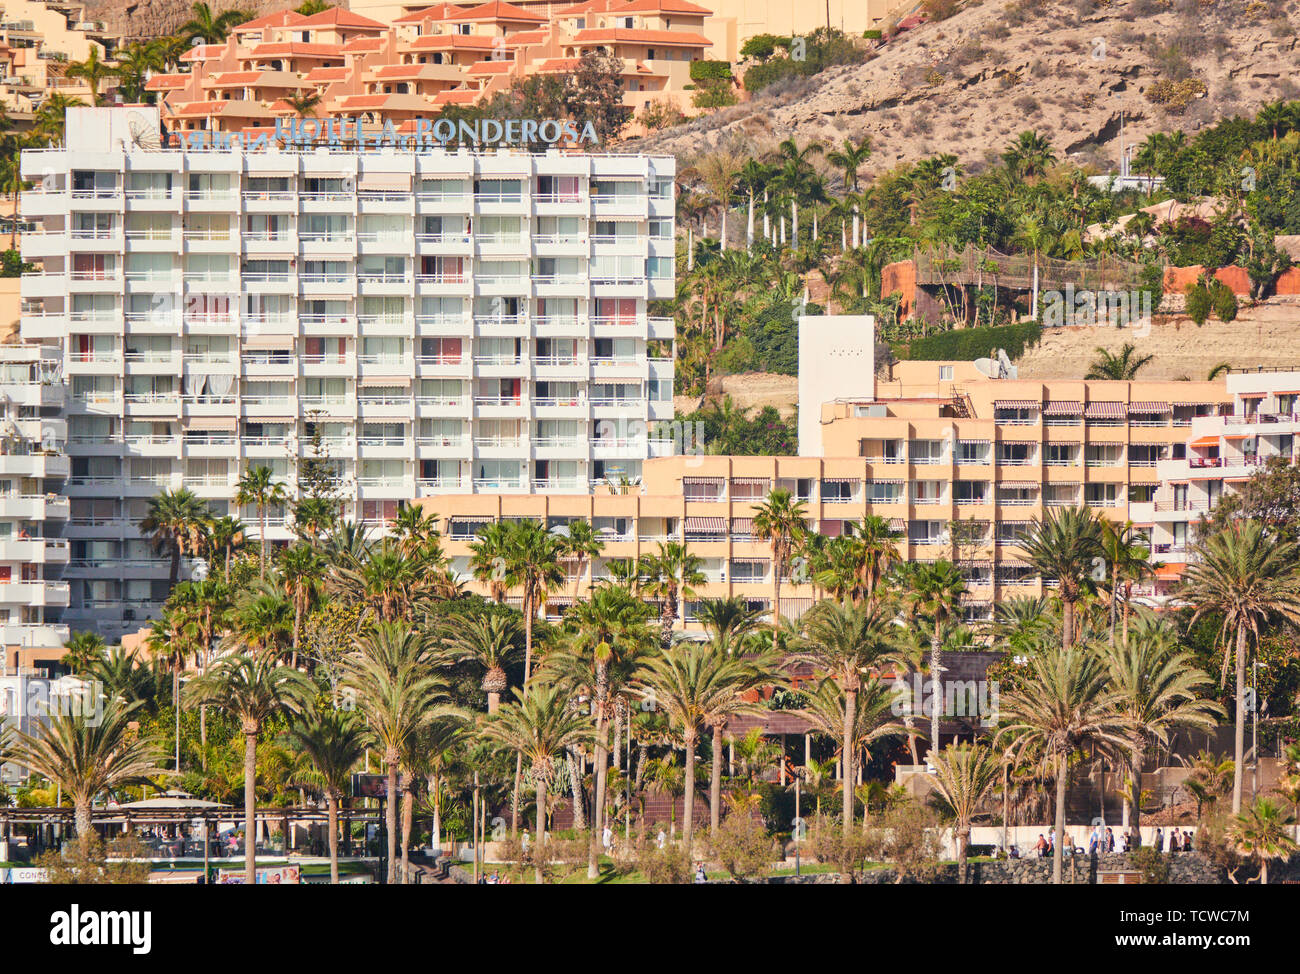 Hotels with swimmimg pool , beach and park with tourists sunbathing in Adeje, Tenerife, Spain, March 16, 2019. © Peter Schatz / Alamy Stock Photos - Stock Image